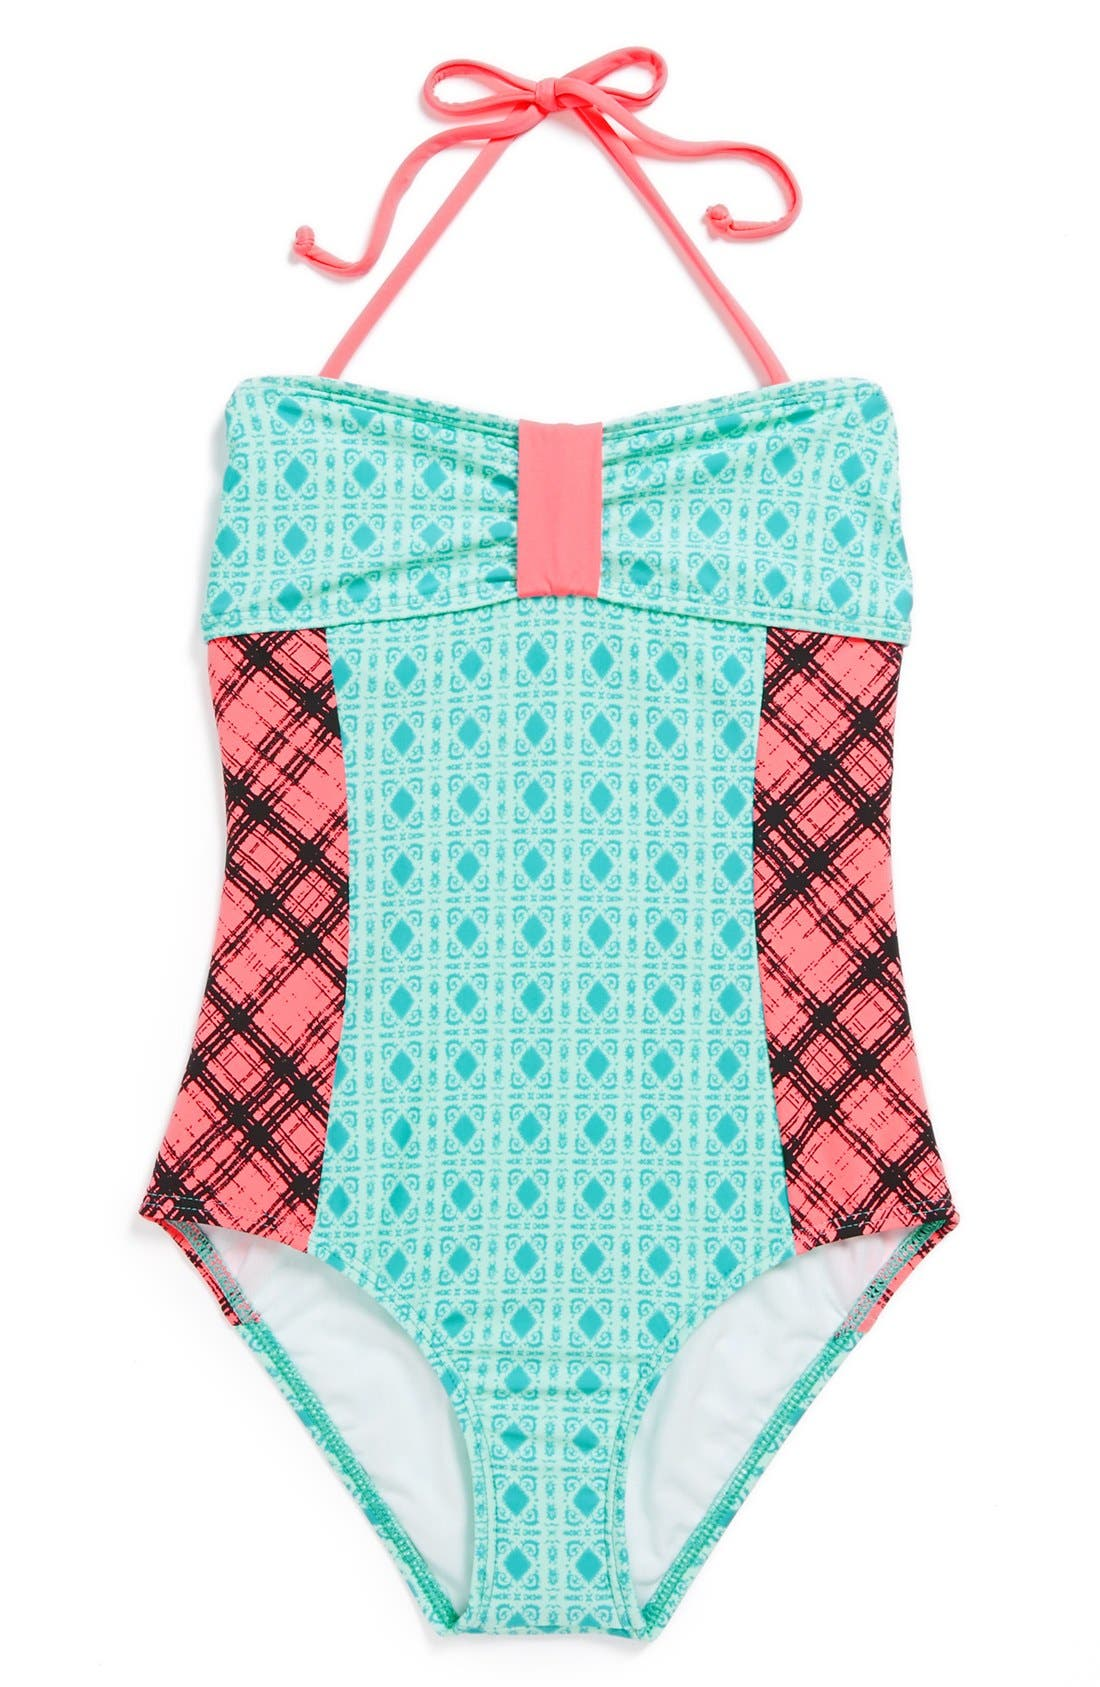 Alternate Image 1 Selected - Ella Moss Mixed Print One-Piece Swimsuit (Big Girls)